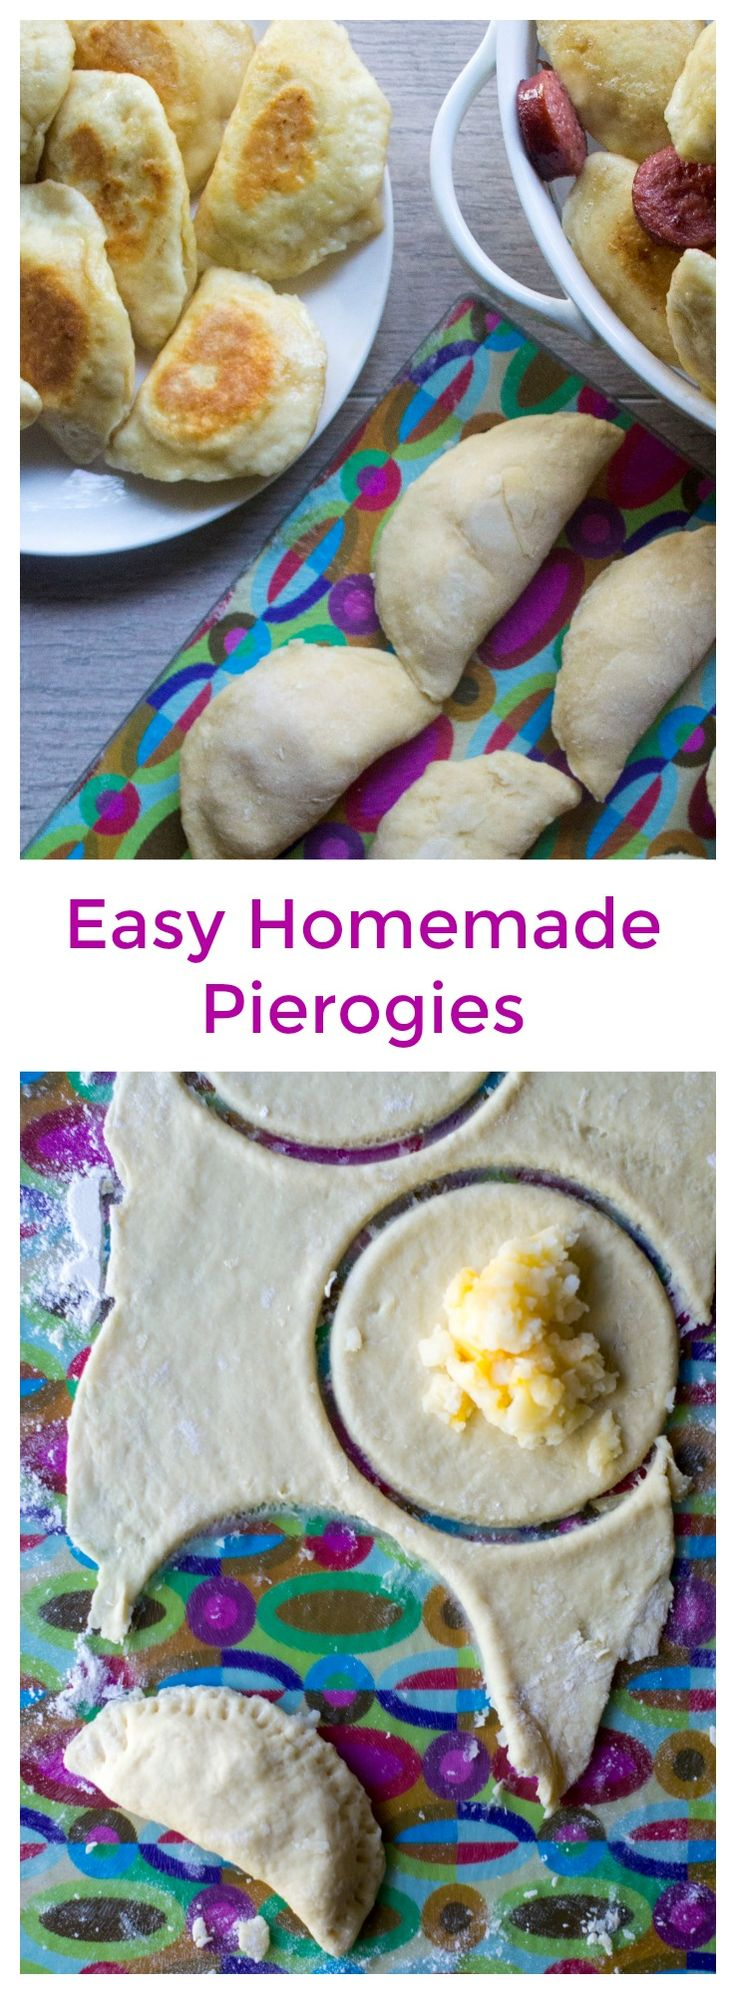 Homemade Pierogies   Homemade Pierogies are easy to make dumplings with a tasty potato and cheese filling and then boiled and sauteed in butter for the most delicious dish! #pierogies #homemadepierogies #polishfood via @thepackmomma